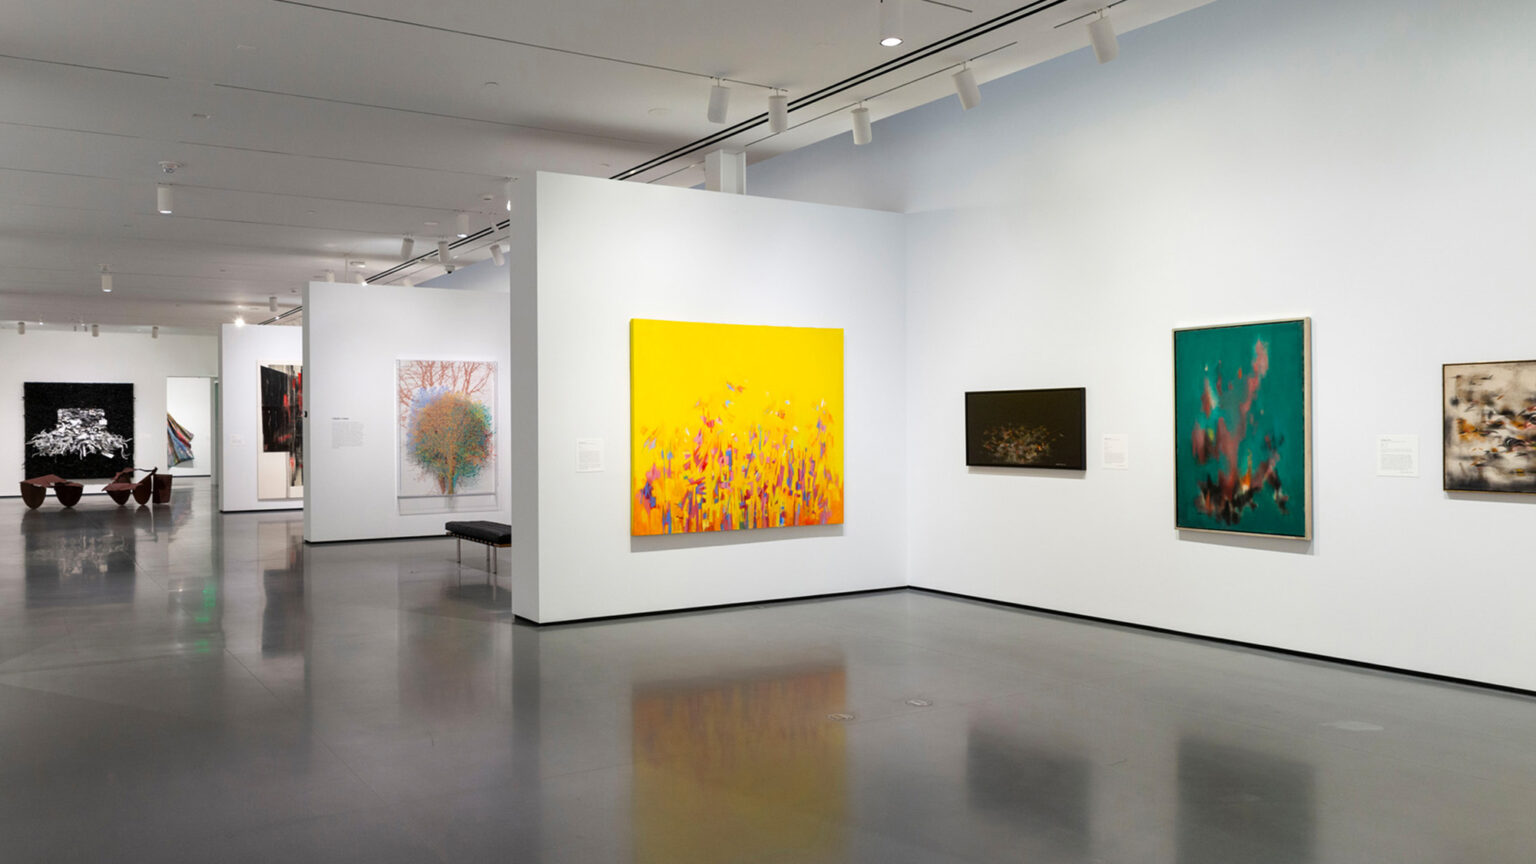 Installation view, Generations: A History of Black Abstract Art. Photo by Mitro Hood.